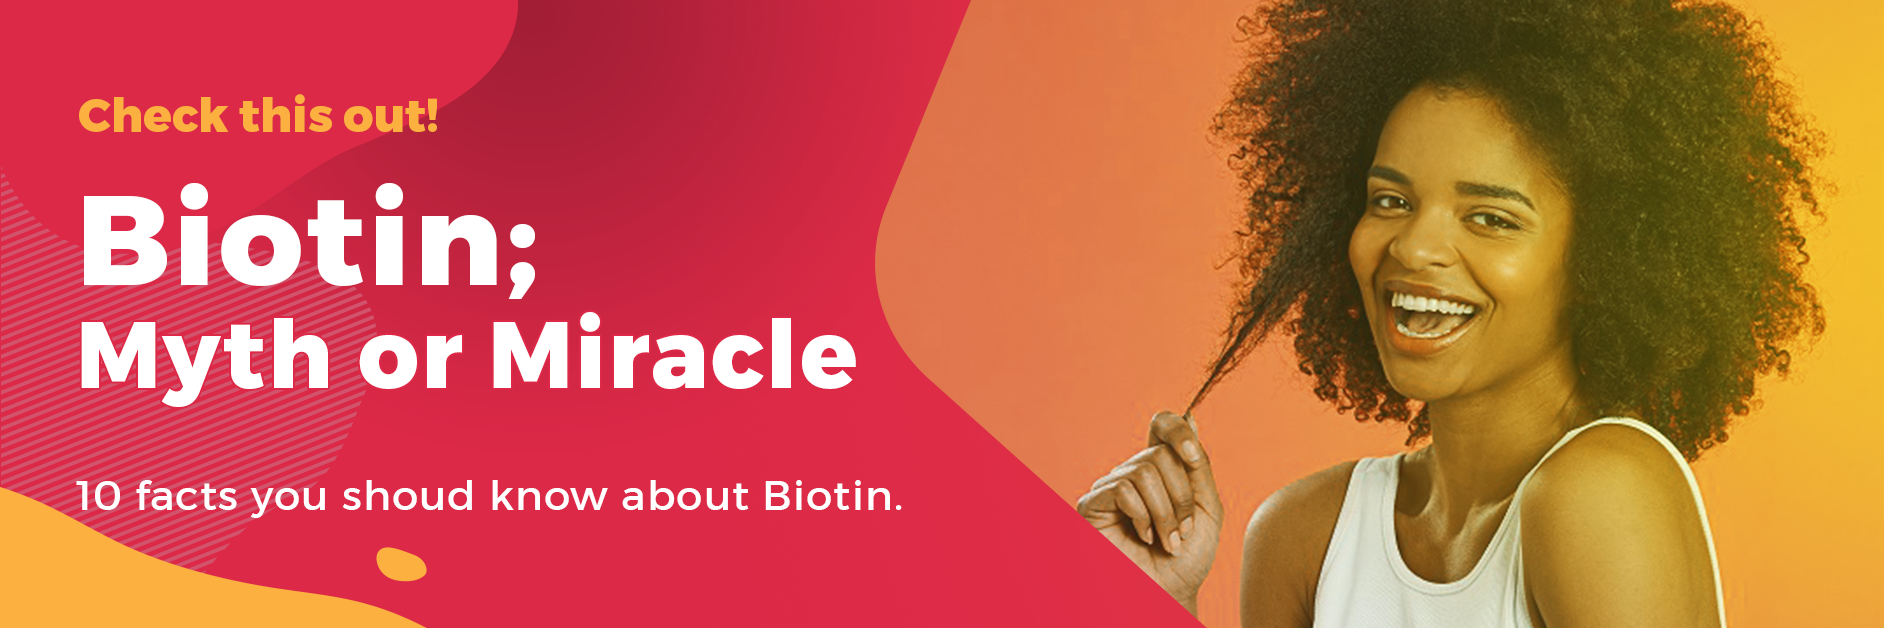 Biotin; Myth or Miracle? 10 facts you should  know about Biotin.